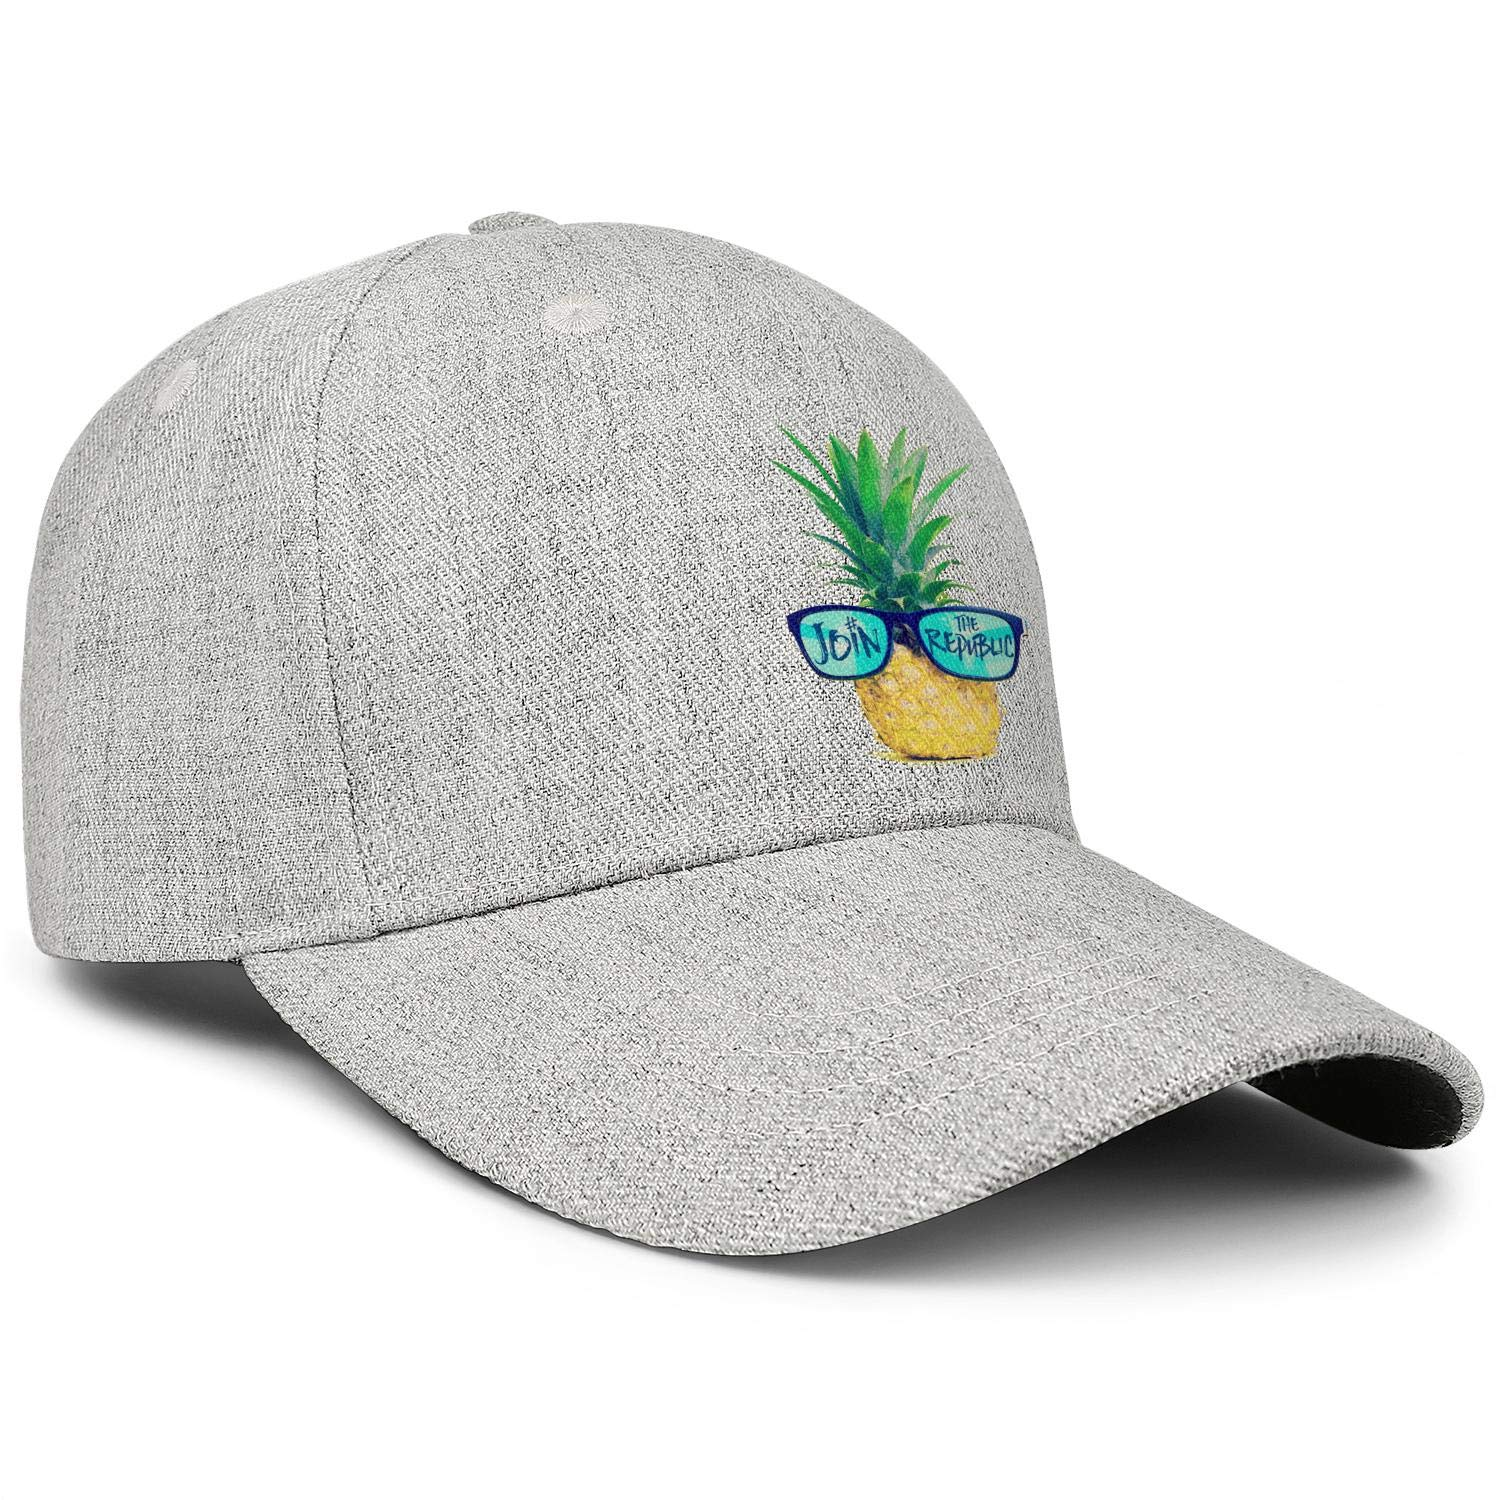 Gold Pineapple in Fashion Sunglasses Unisex Baseball Cap Outdoor Sun Hats Adjustable Trucker Caps Dad-Hat